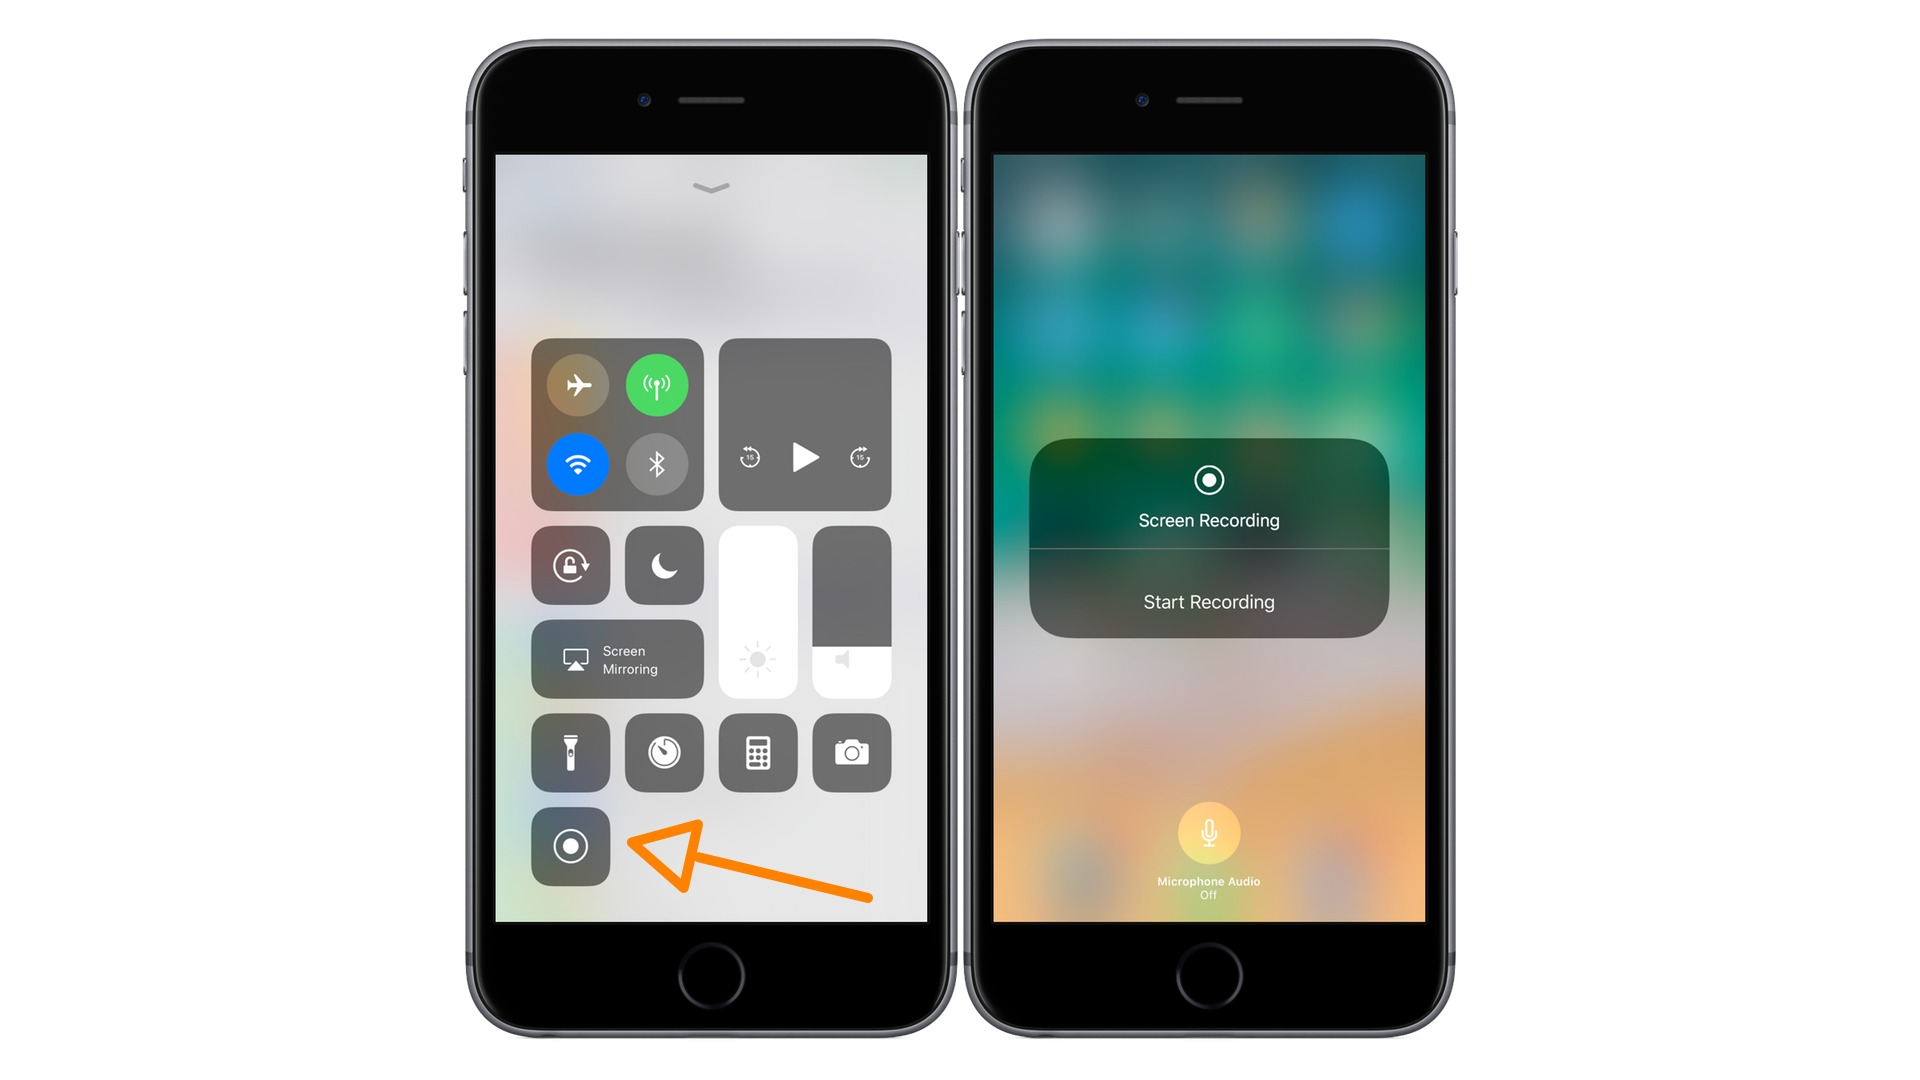 How to put screen record on iphone 6s